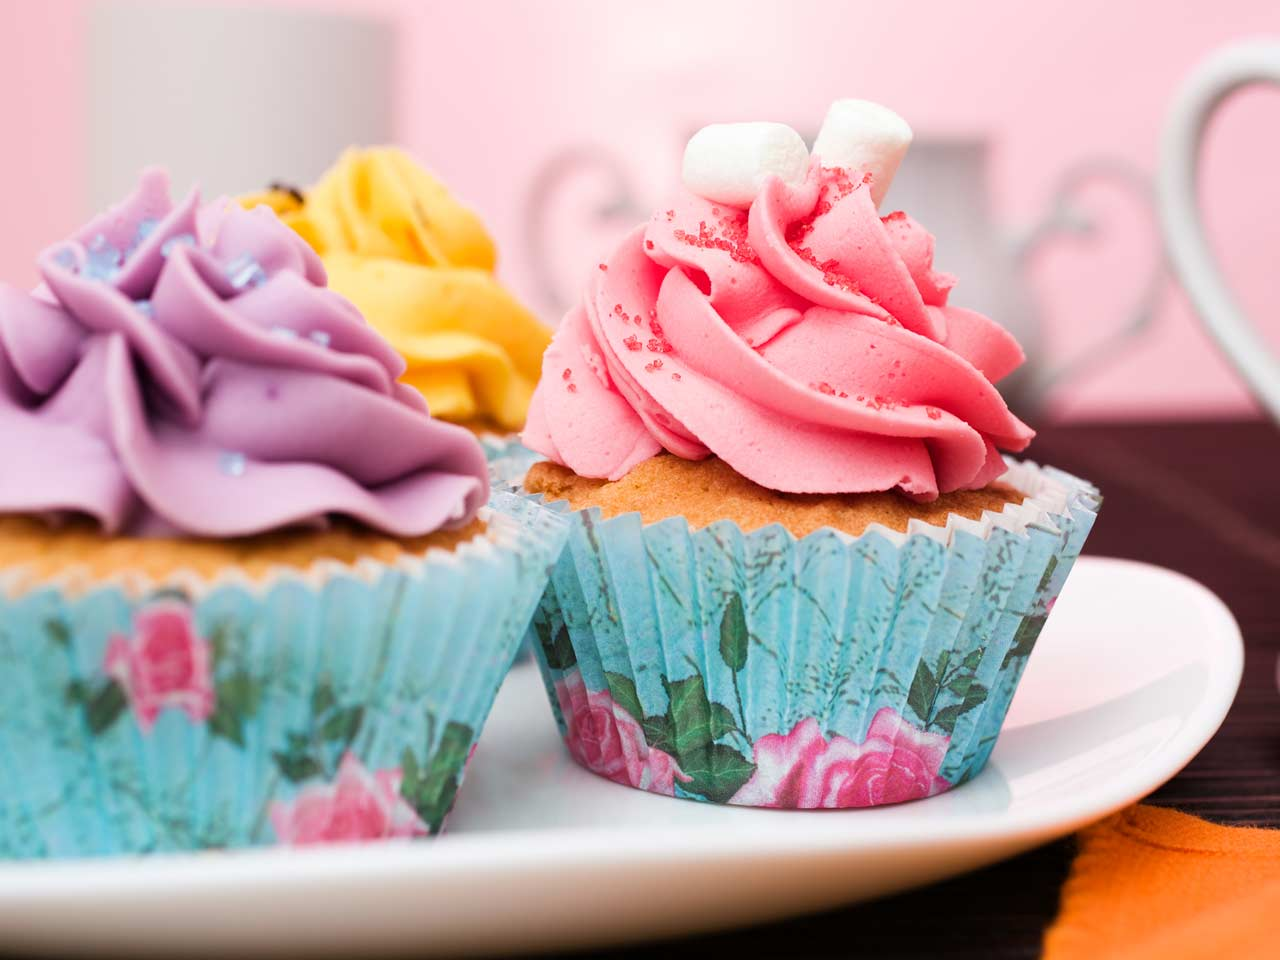 Basic cupcakes with buttercream icing